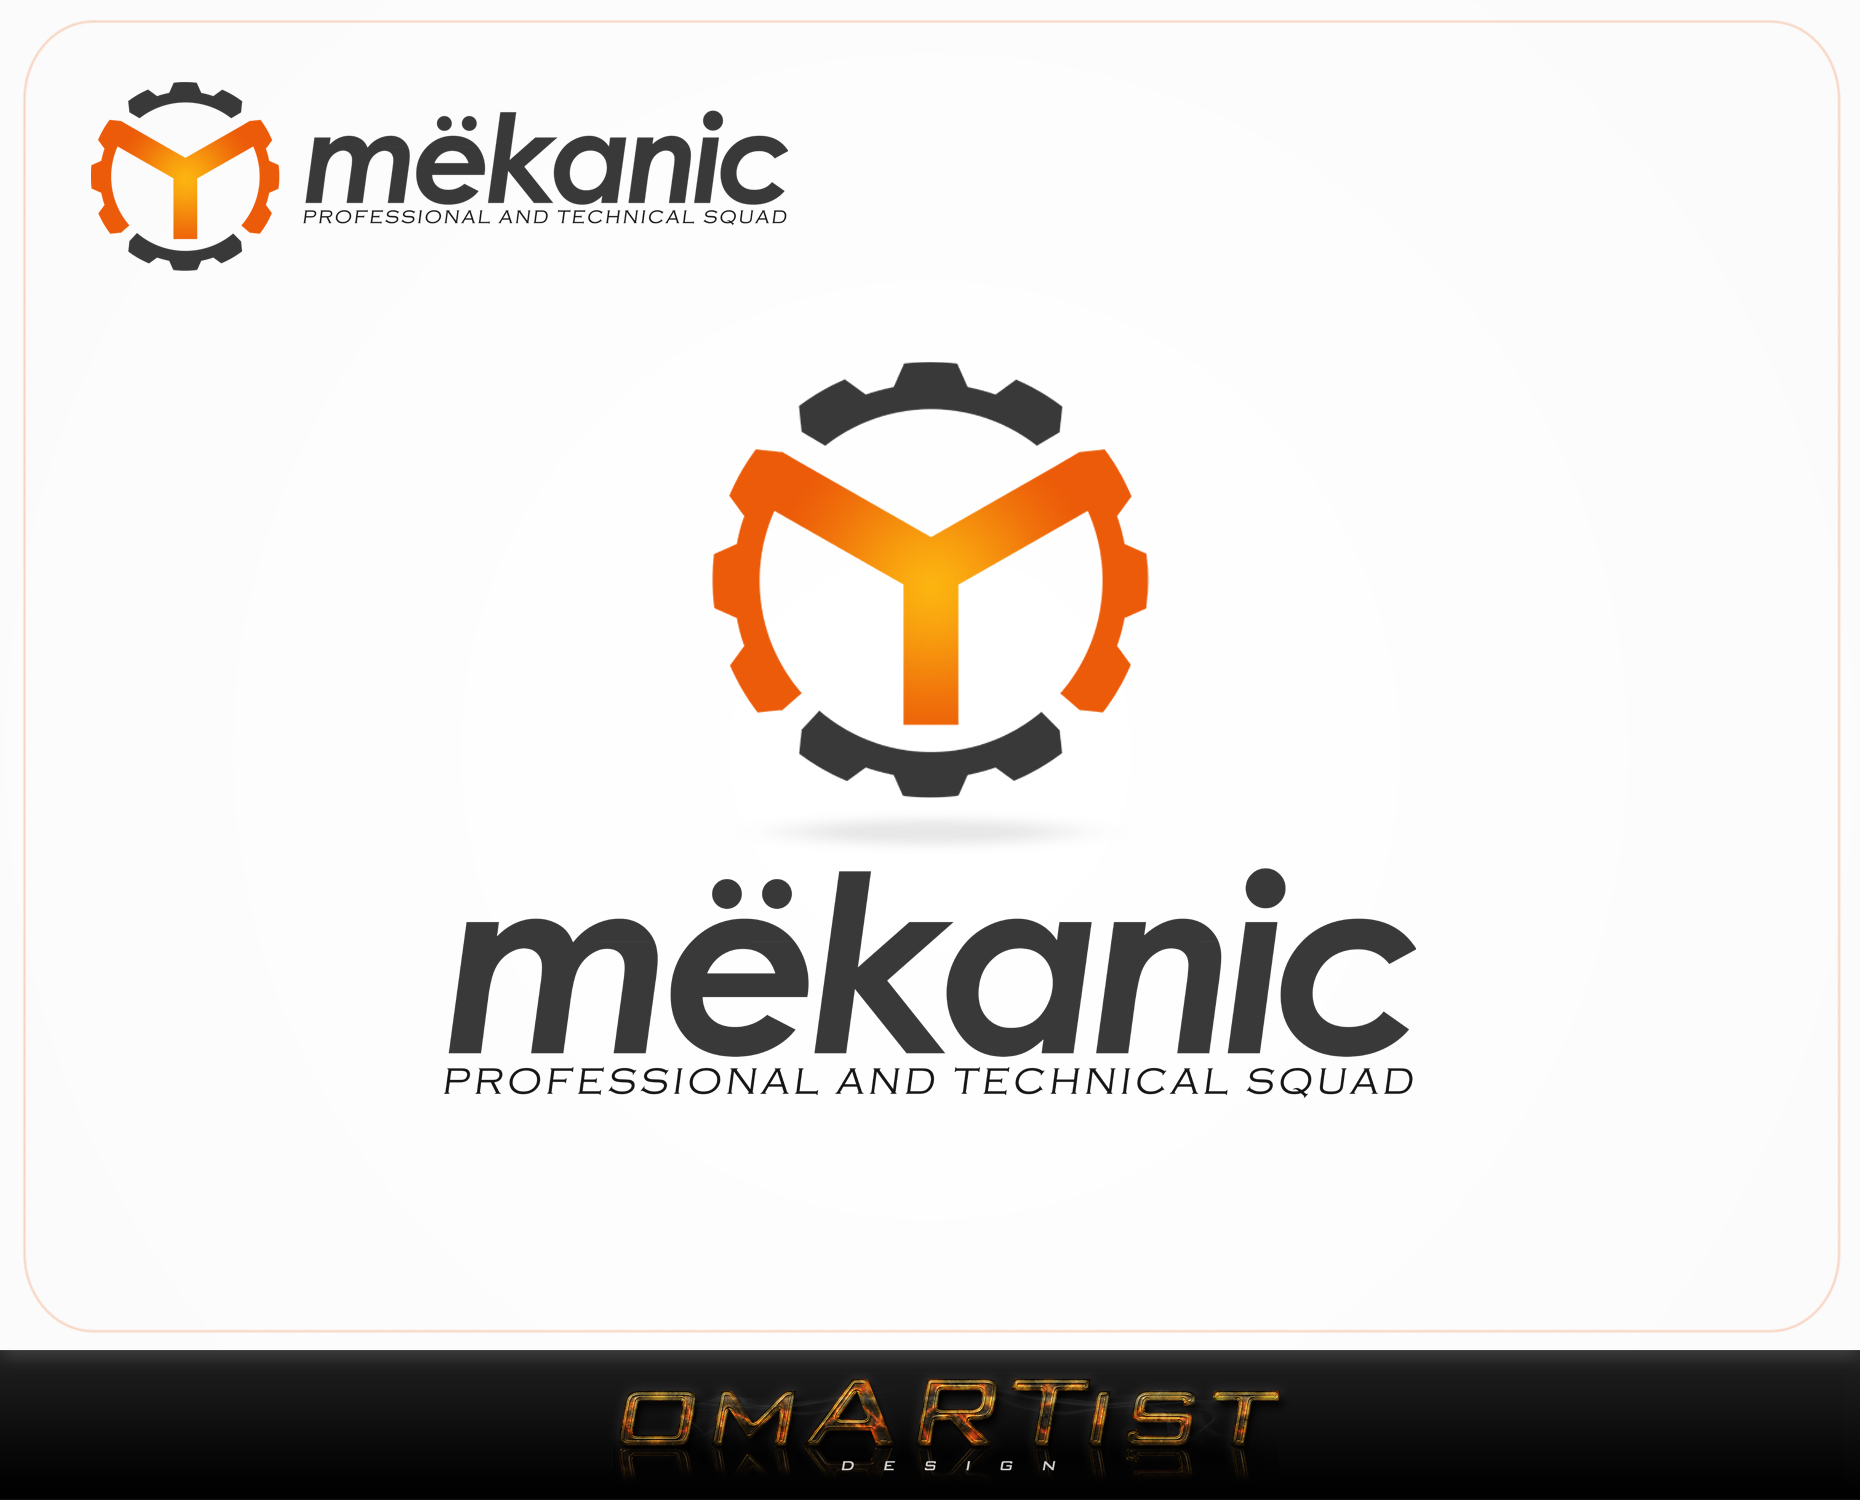 Logo Design by omARTist - Entry No. 88 in the Logo Design Contest Creative Logo Design for MËKANIC - Professional and technical squad.